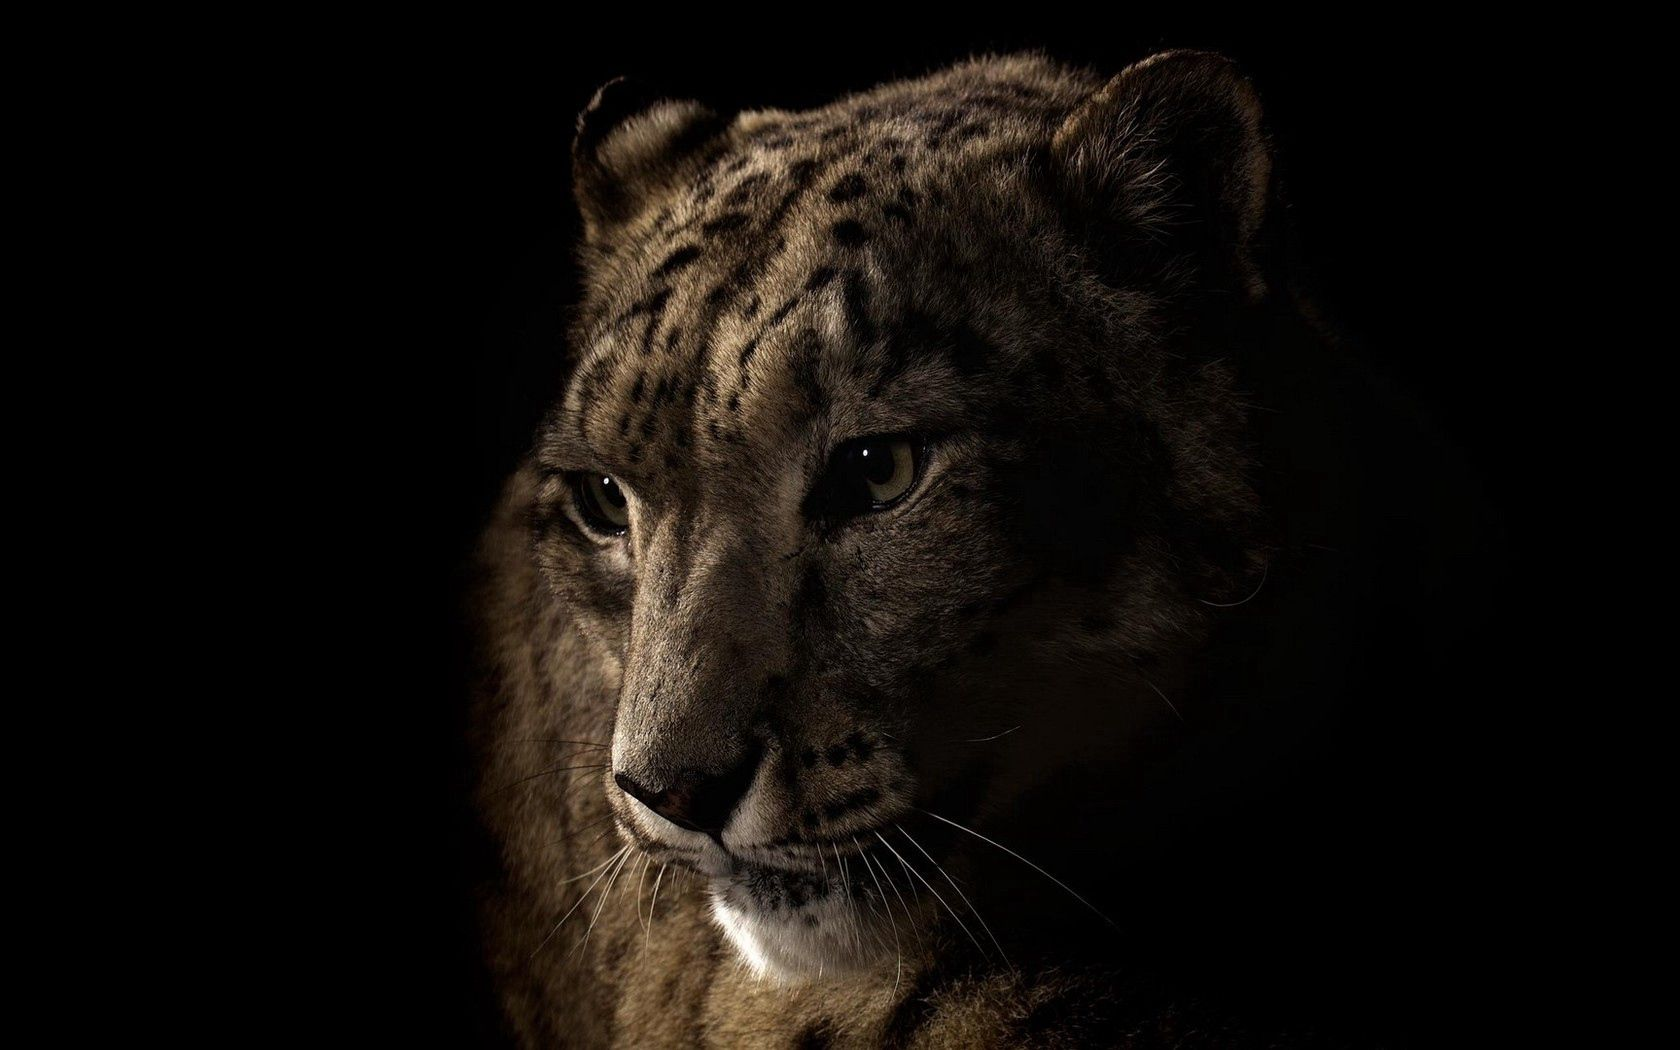 106105 download wallpaper Dark, Leopard, Muzzle, Shadow, Eyes screensavers and pictures for free